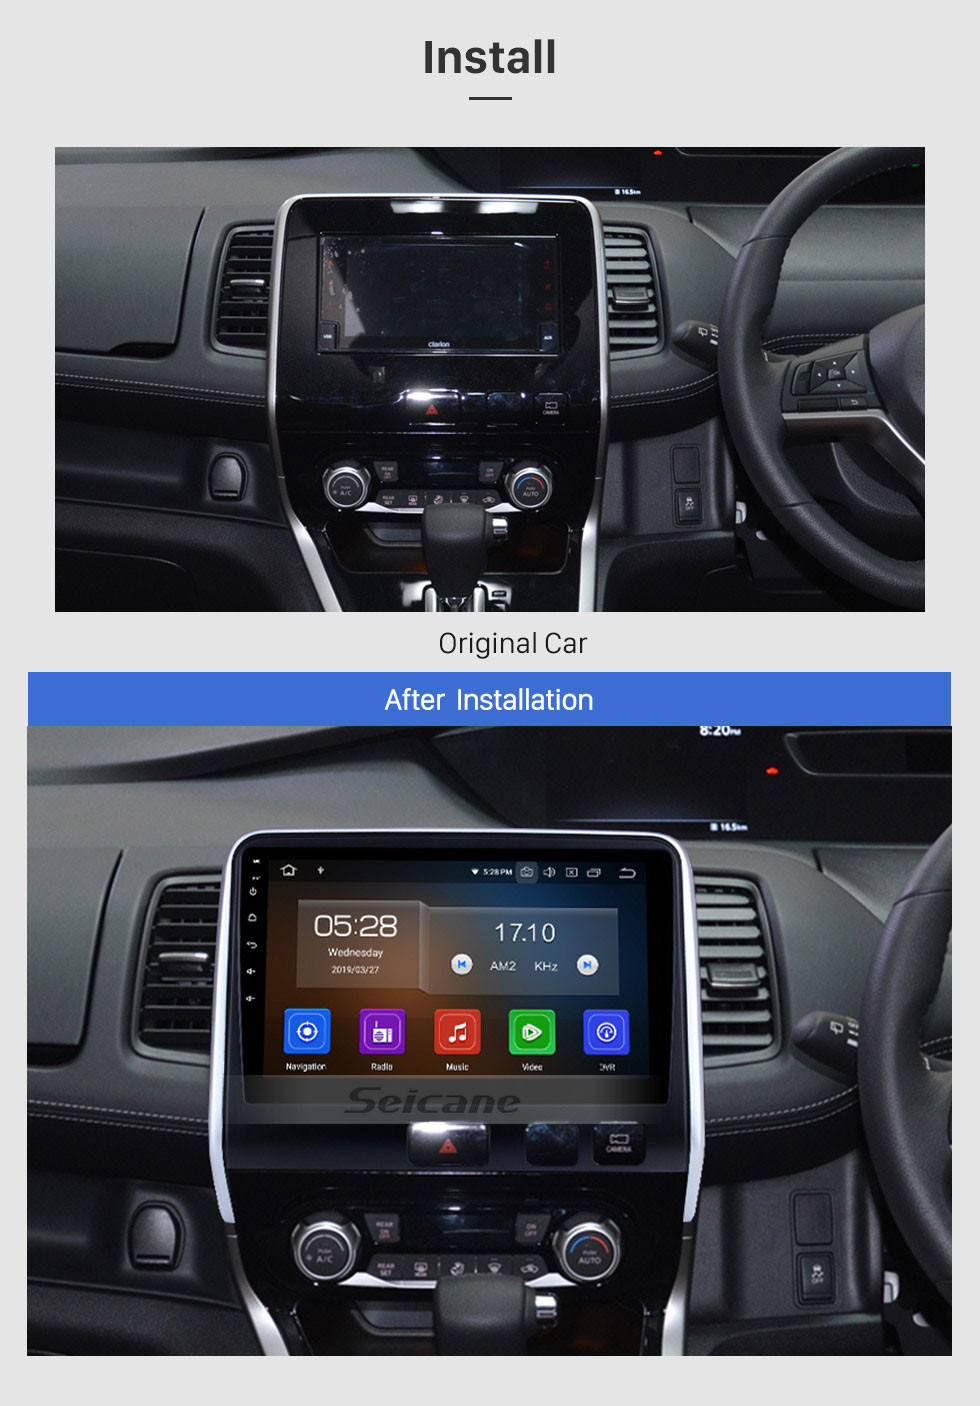 Seicane Aftermarket Android 10.0 HD Touchscreen 10.1 inch Radio for 2016 2017 2018 Nissan Serena Bluetooth GPS Navigation Head unit support 3G/4G wifi DVD Player Carplay 1080P